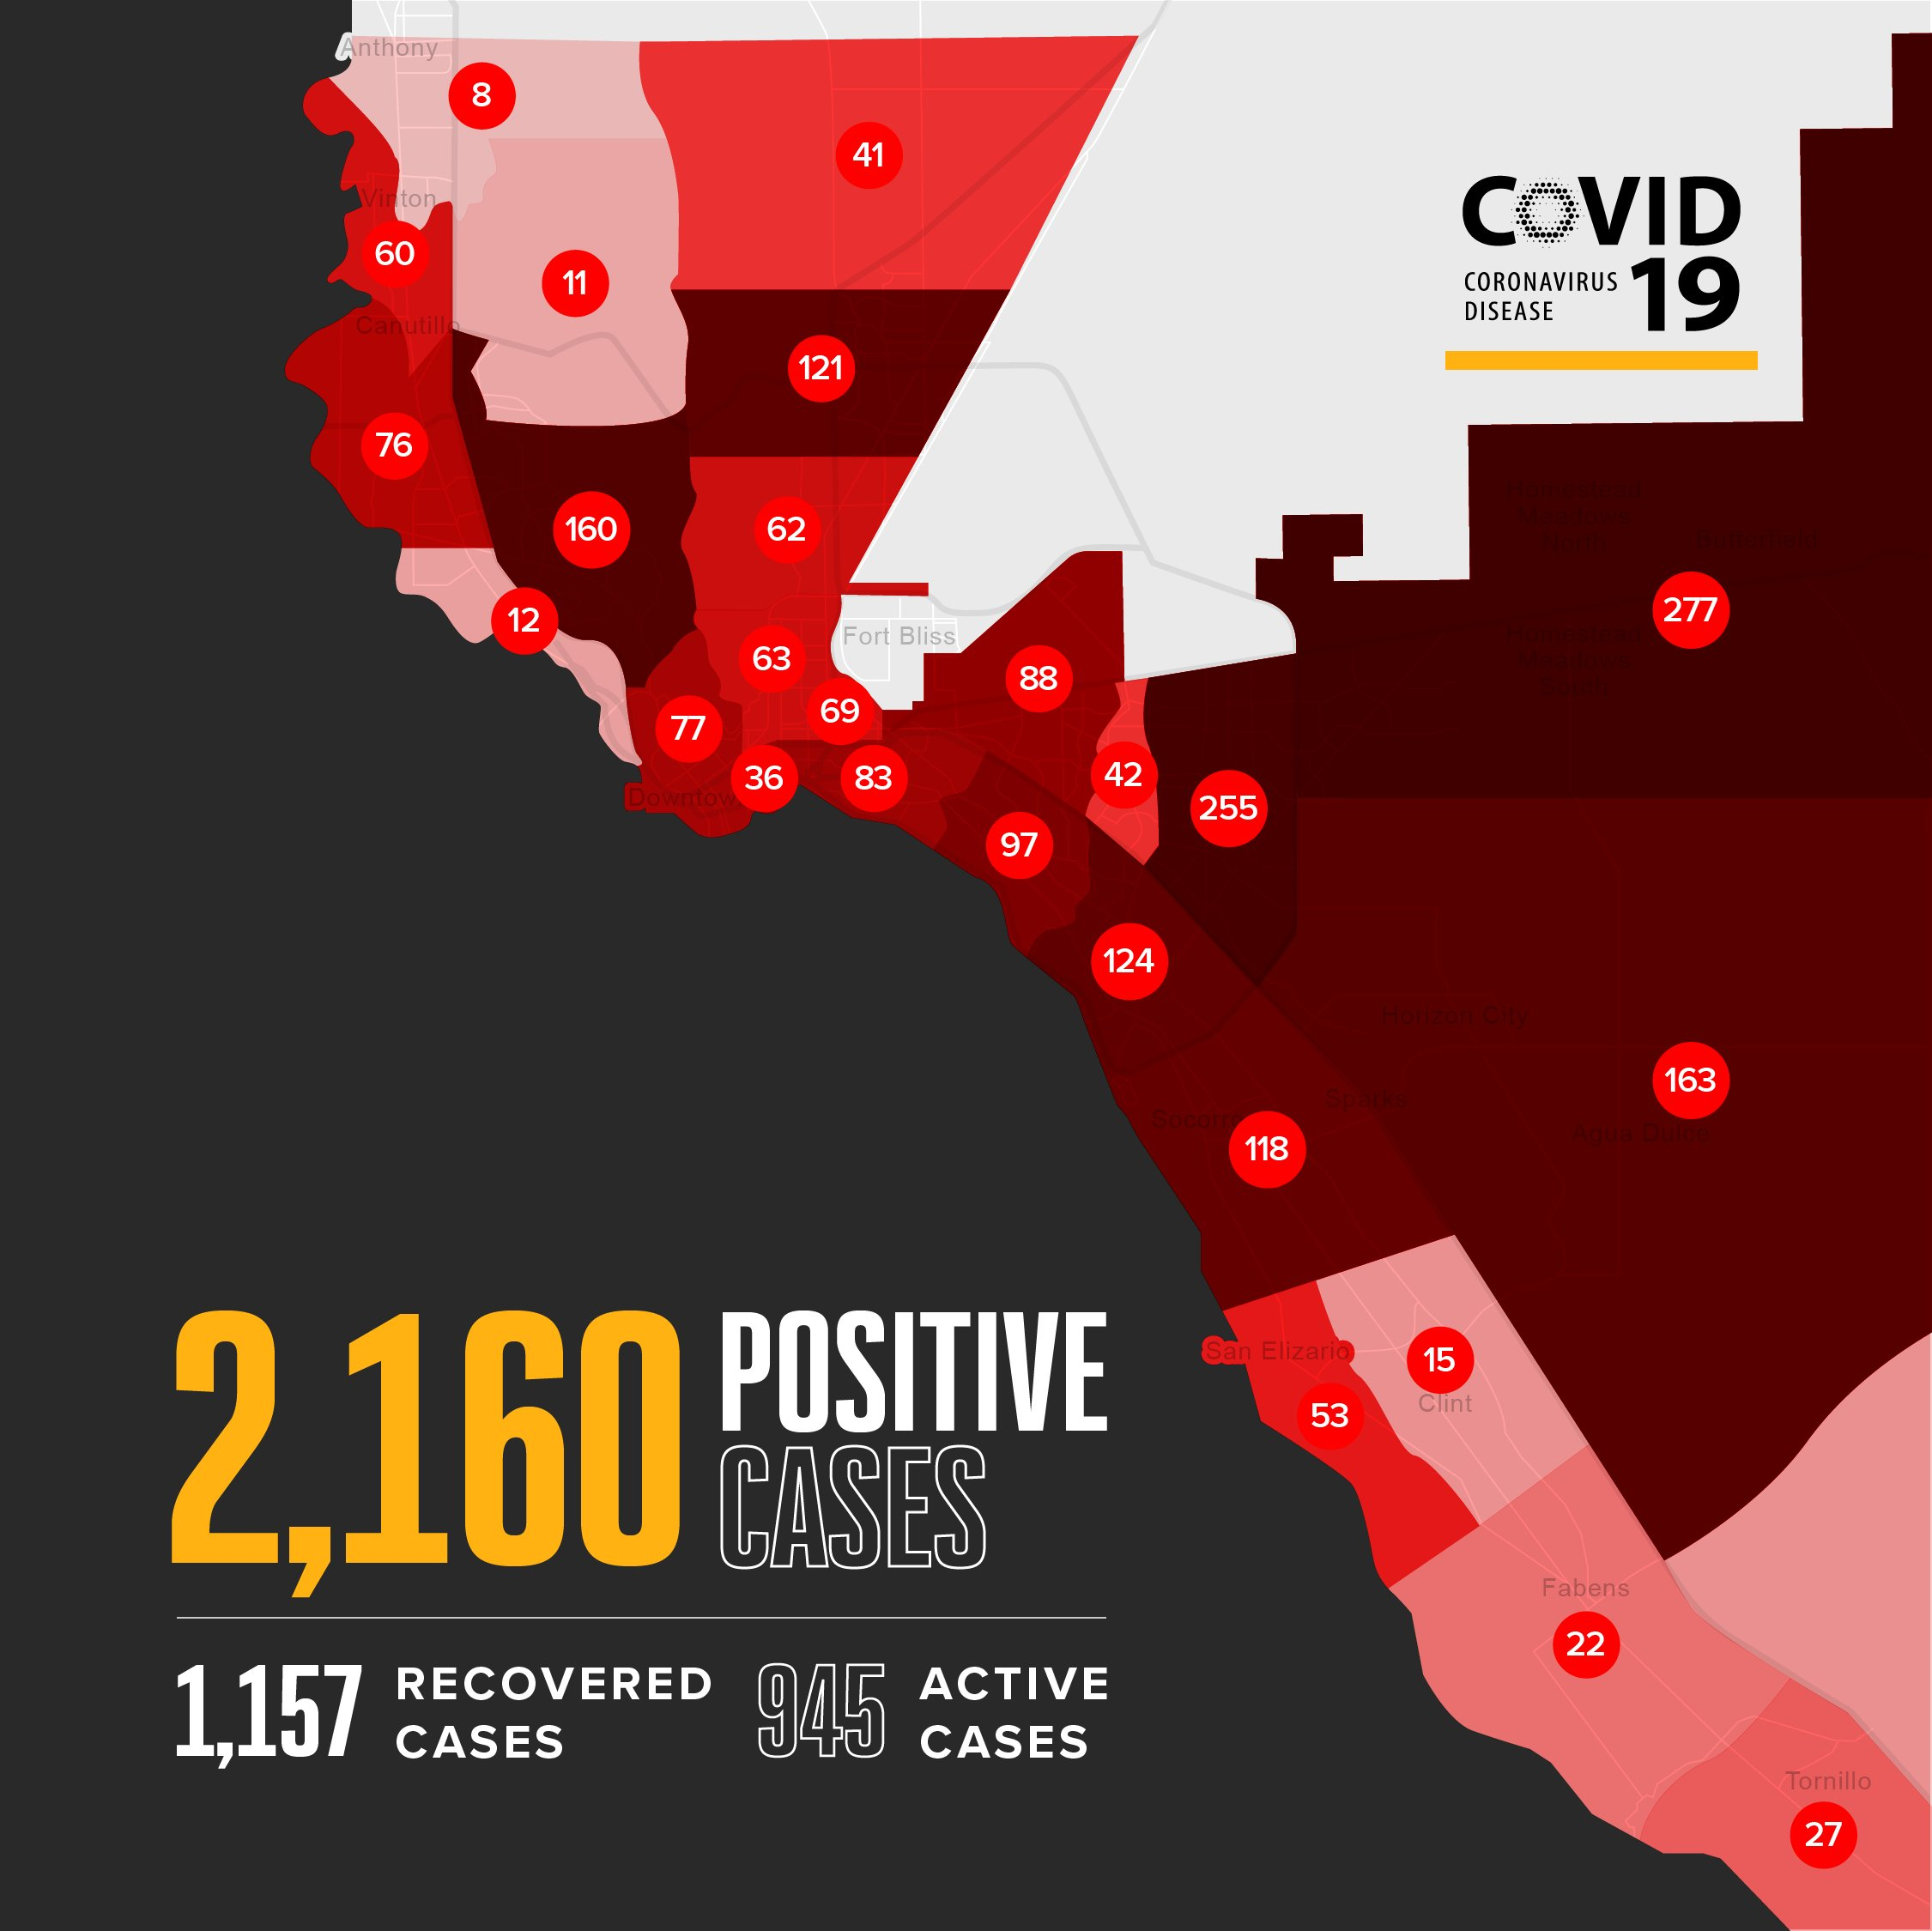 The map above shows the amount of positive COVID-19 cases by ZIP codes and the number of cases in parenthesis: 79821 (8), 79835 (60), 79836 (15), 79838 (22), 79849 (53), 79853 (27), 79901 (36), 79902 (77), 79903 (69), 79904 (62), 79905 (83), 79907 (124), 79911 (11), 79912 (160), 79915 (97), 79922 (12), 79924 (121), 79925 (88), 79927 (118), 79928 (163), 79930 (63), 79932 (76), 79934 (41), 79935 (42), 79936 (255), 79938 (277)